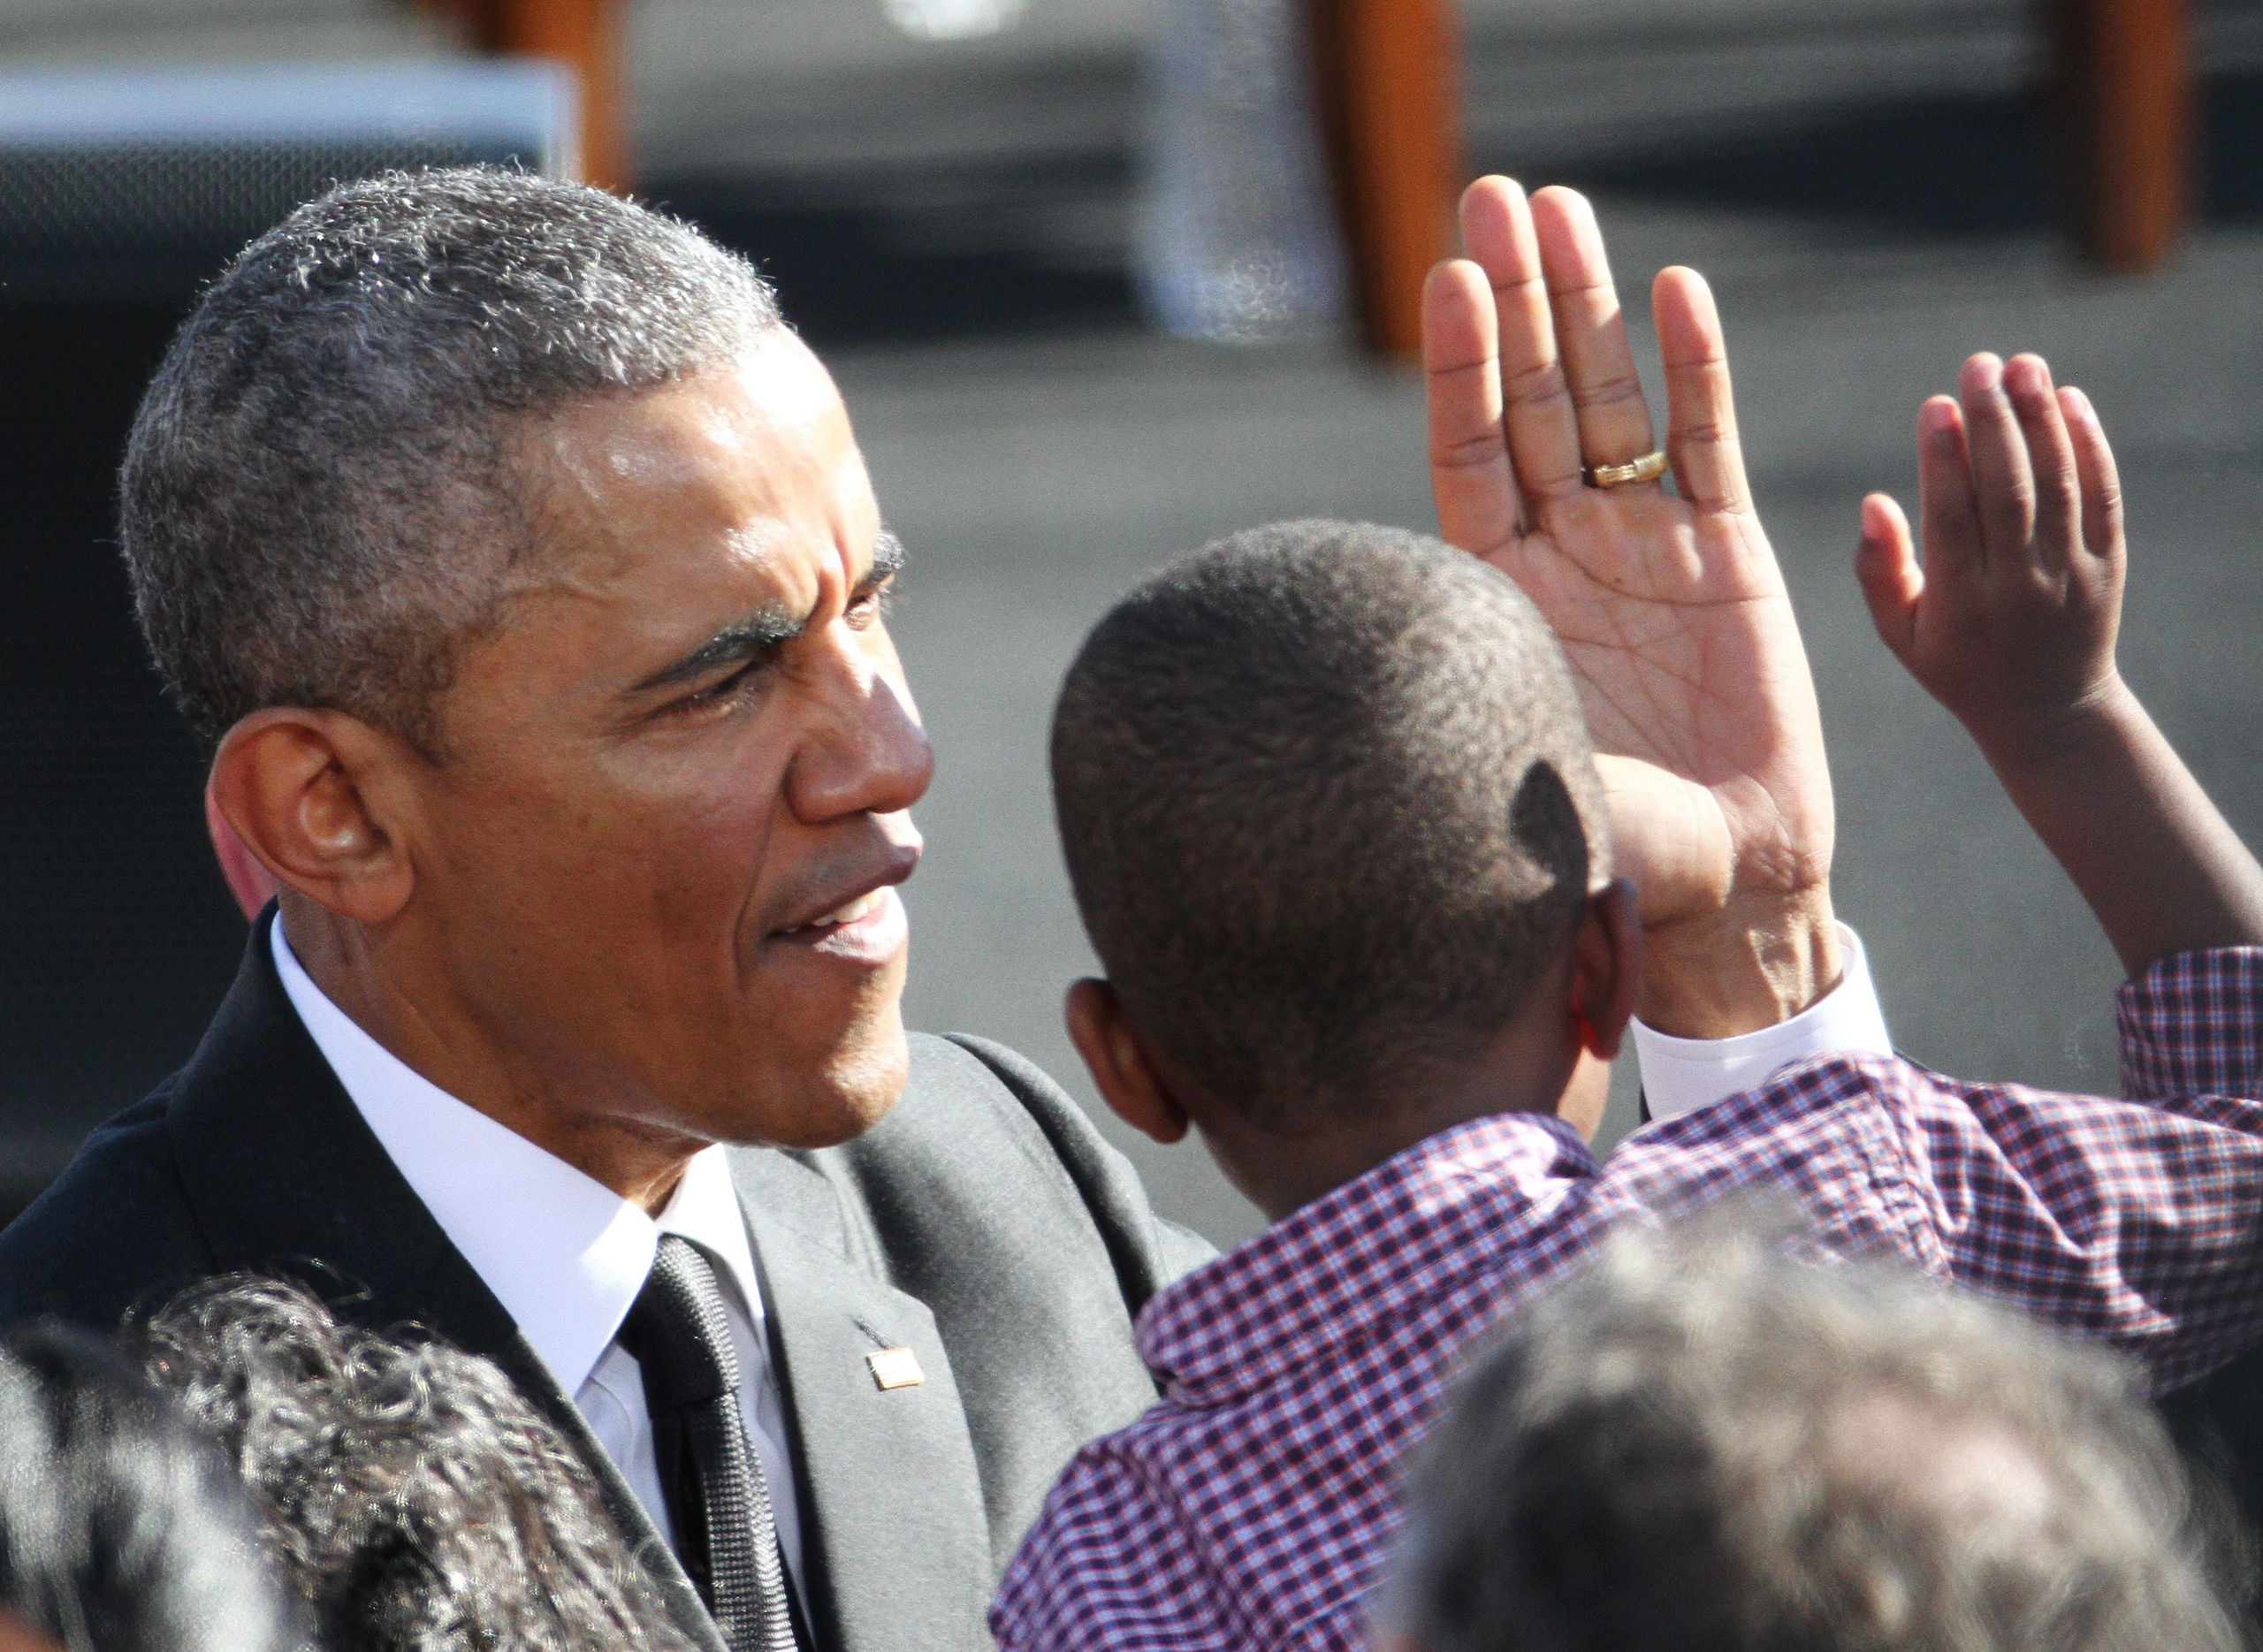 President Barack Obama talks to a young member of the audience after speaking in Selma, Ala. on March 7, 2015.